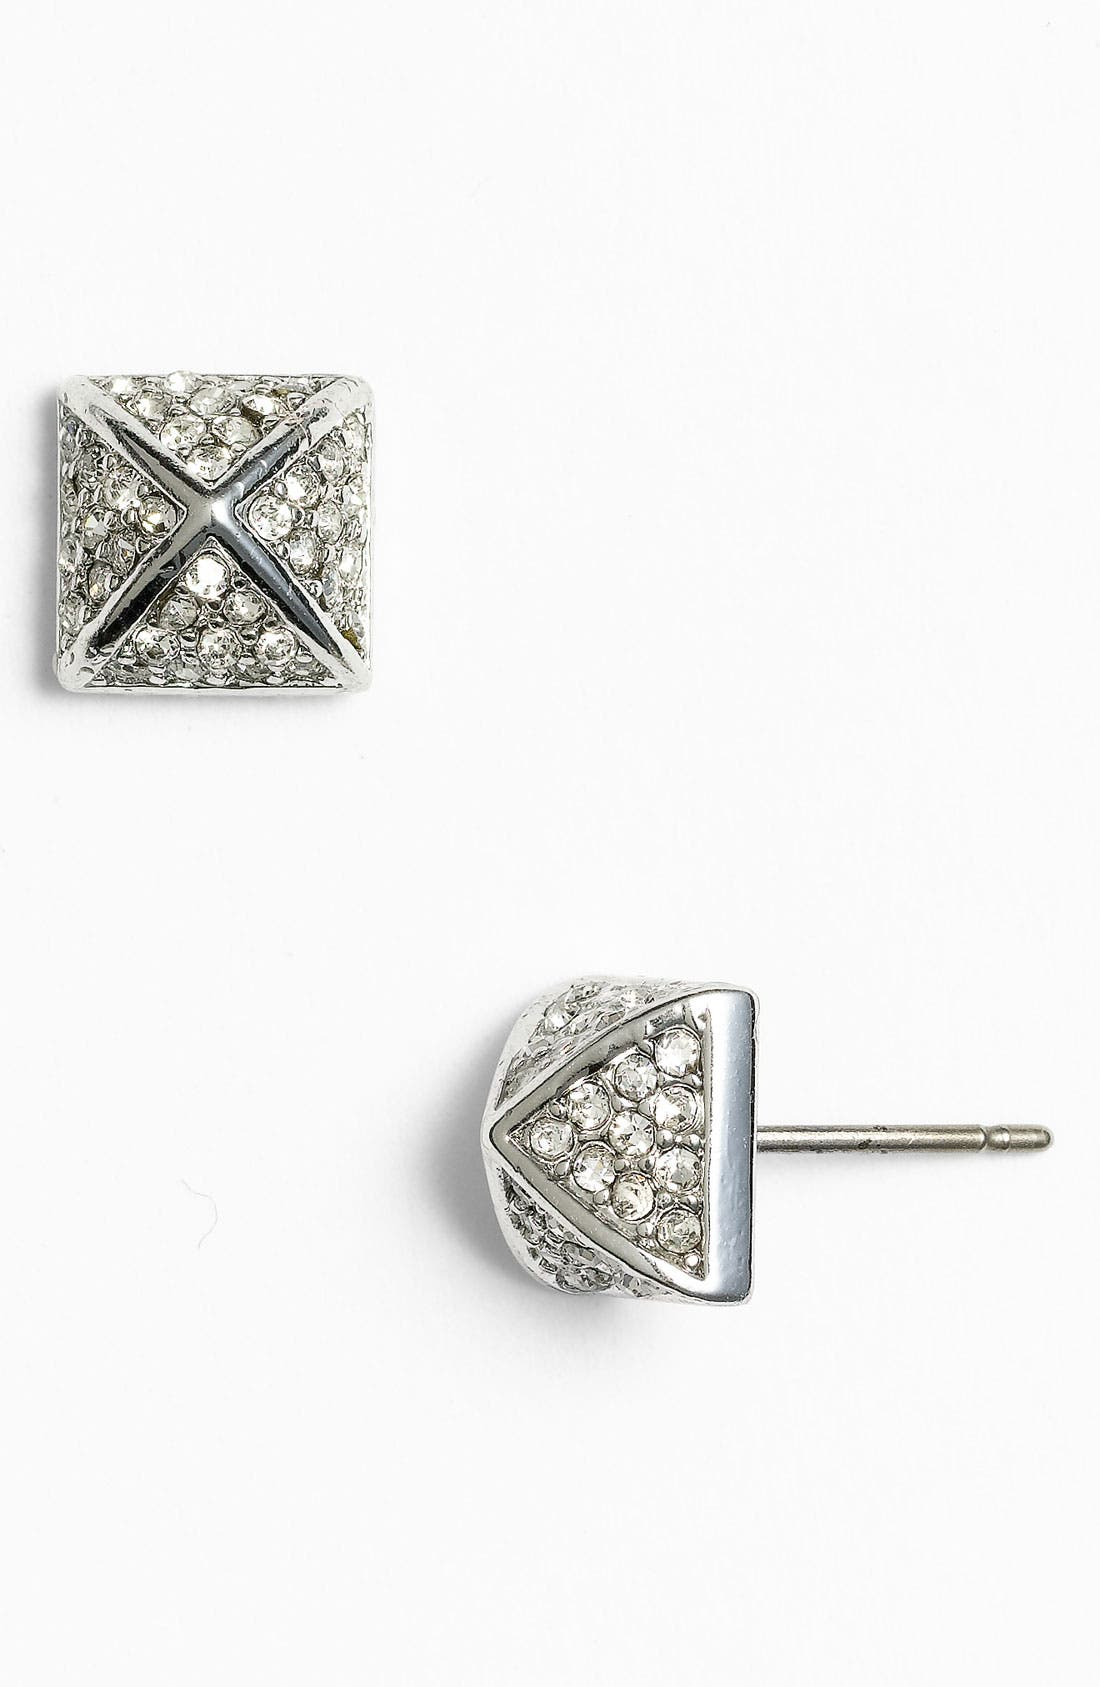 Alternate Image 1 Selected - Juicy Couture 'Punk Royals' Pyramid Stud Earrings